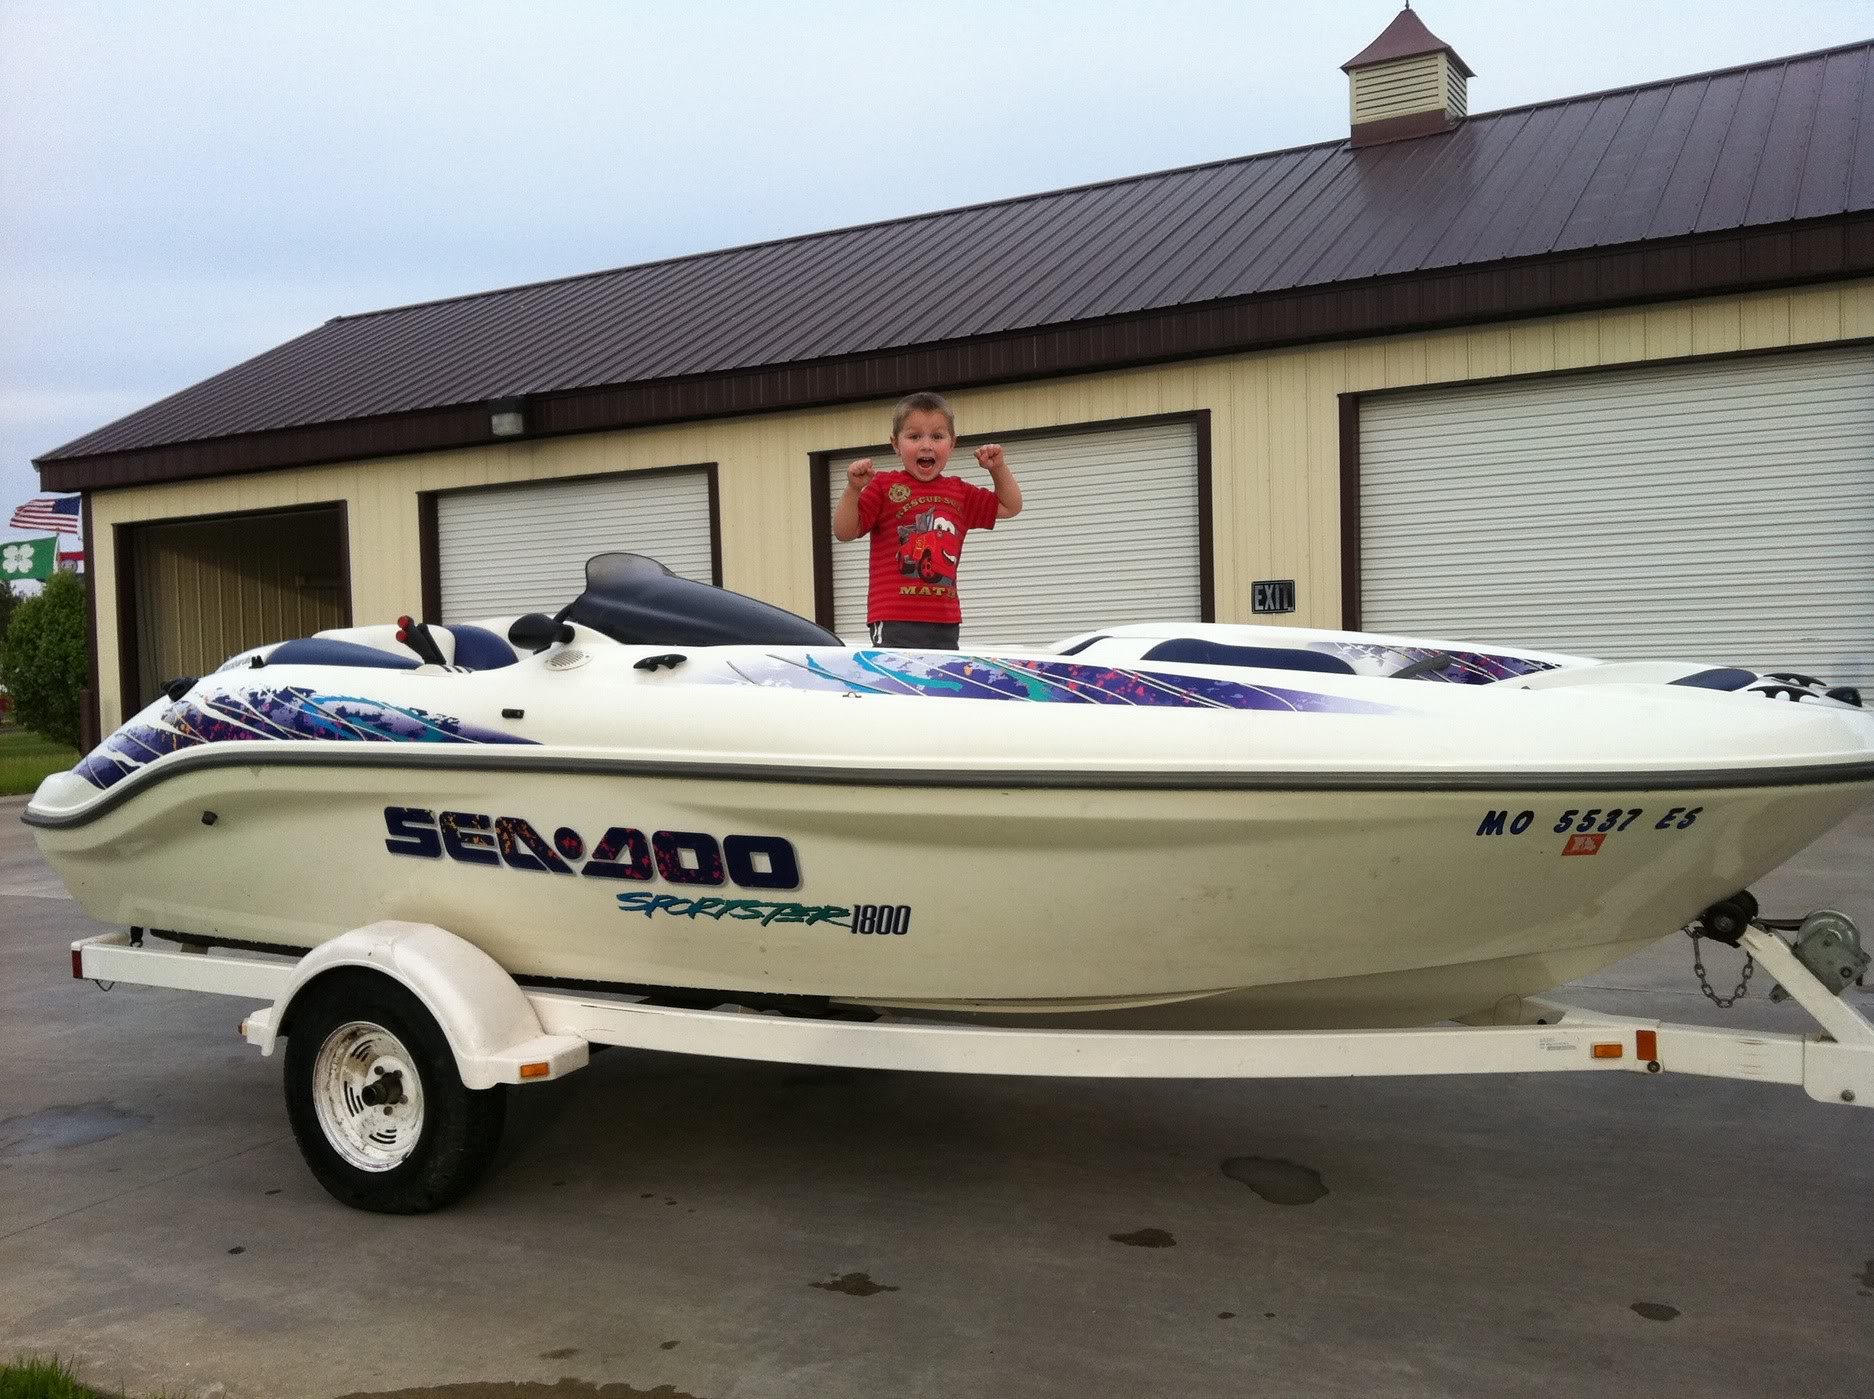 It's a 1998 Seadoo Sportster 1800. The boat is in great shape both interior  and exterior (original owner always kept covered and garaged).